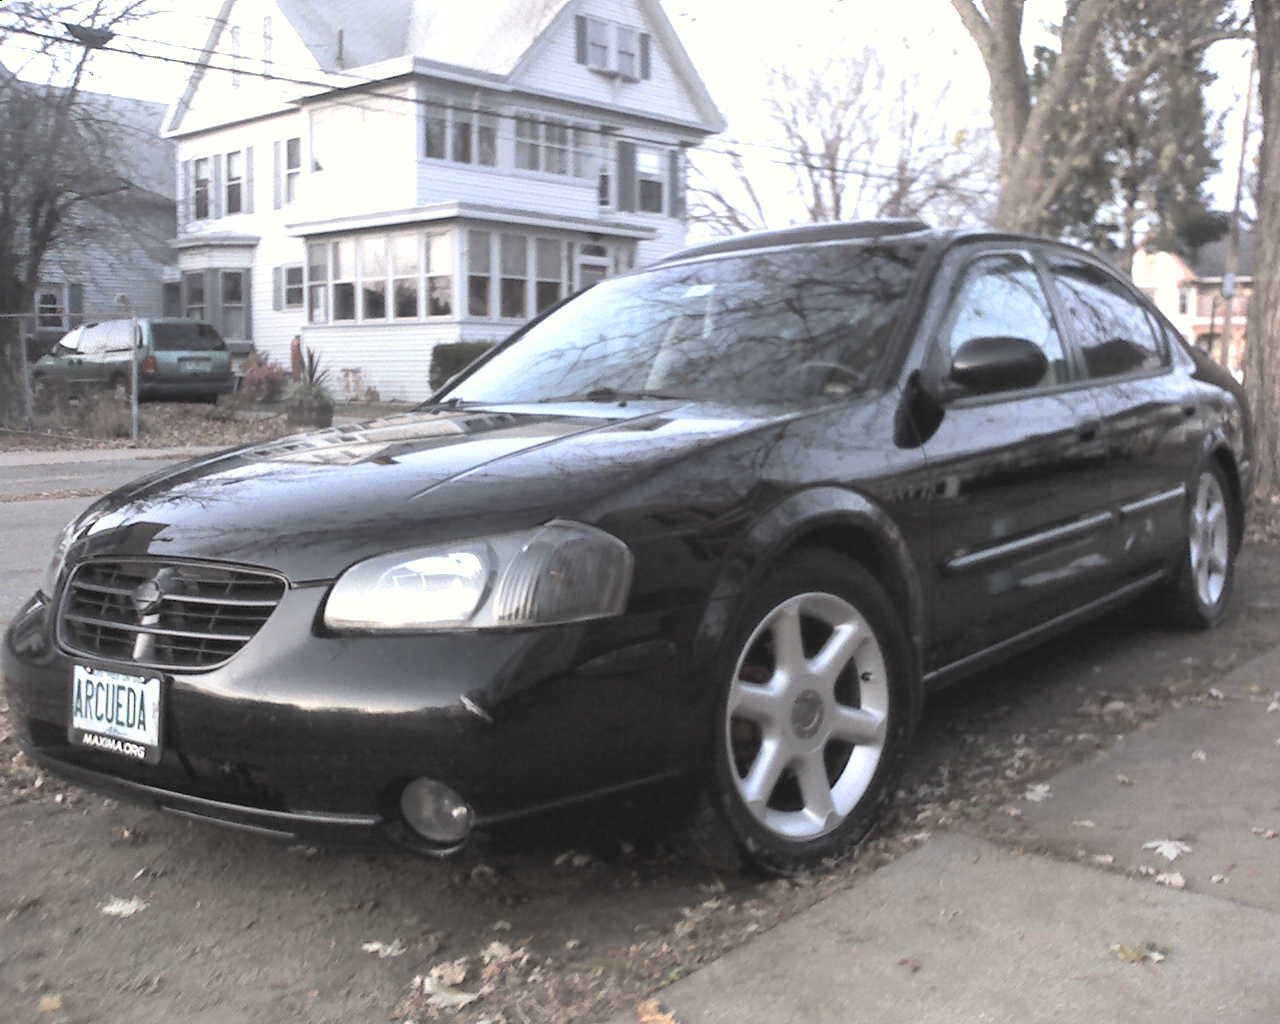 arcueda 39 s 2001 nissan maxima in rochester nh. Black Bedroom Furniture Sets. Home Design Ideas